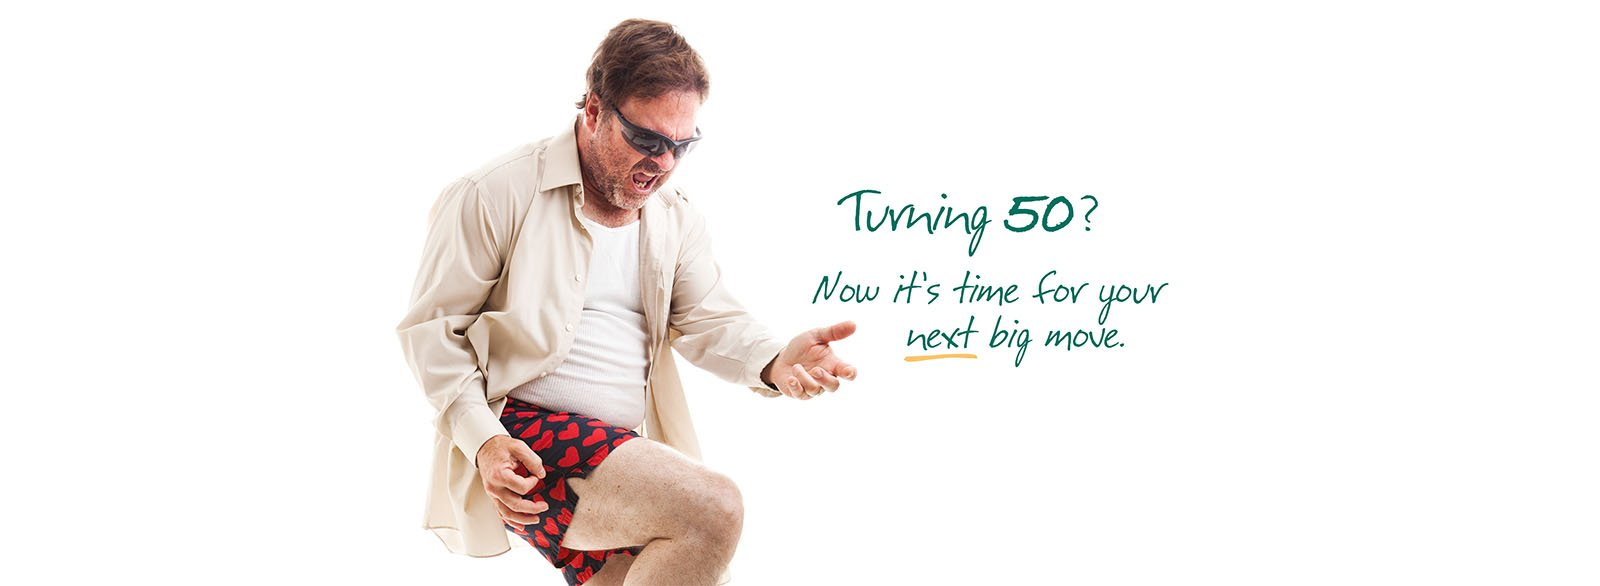 Middle-aged man in boxer shorts playing air guitar